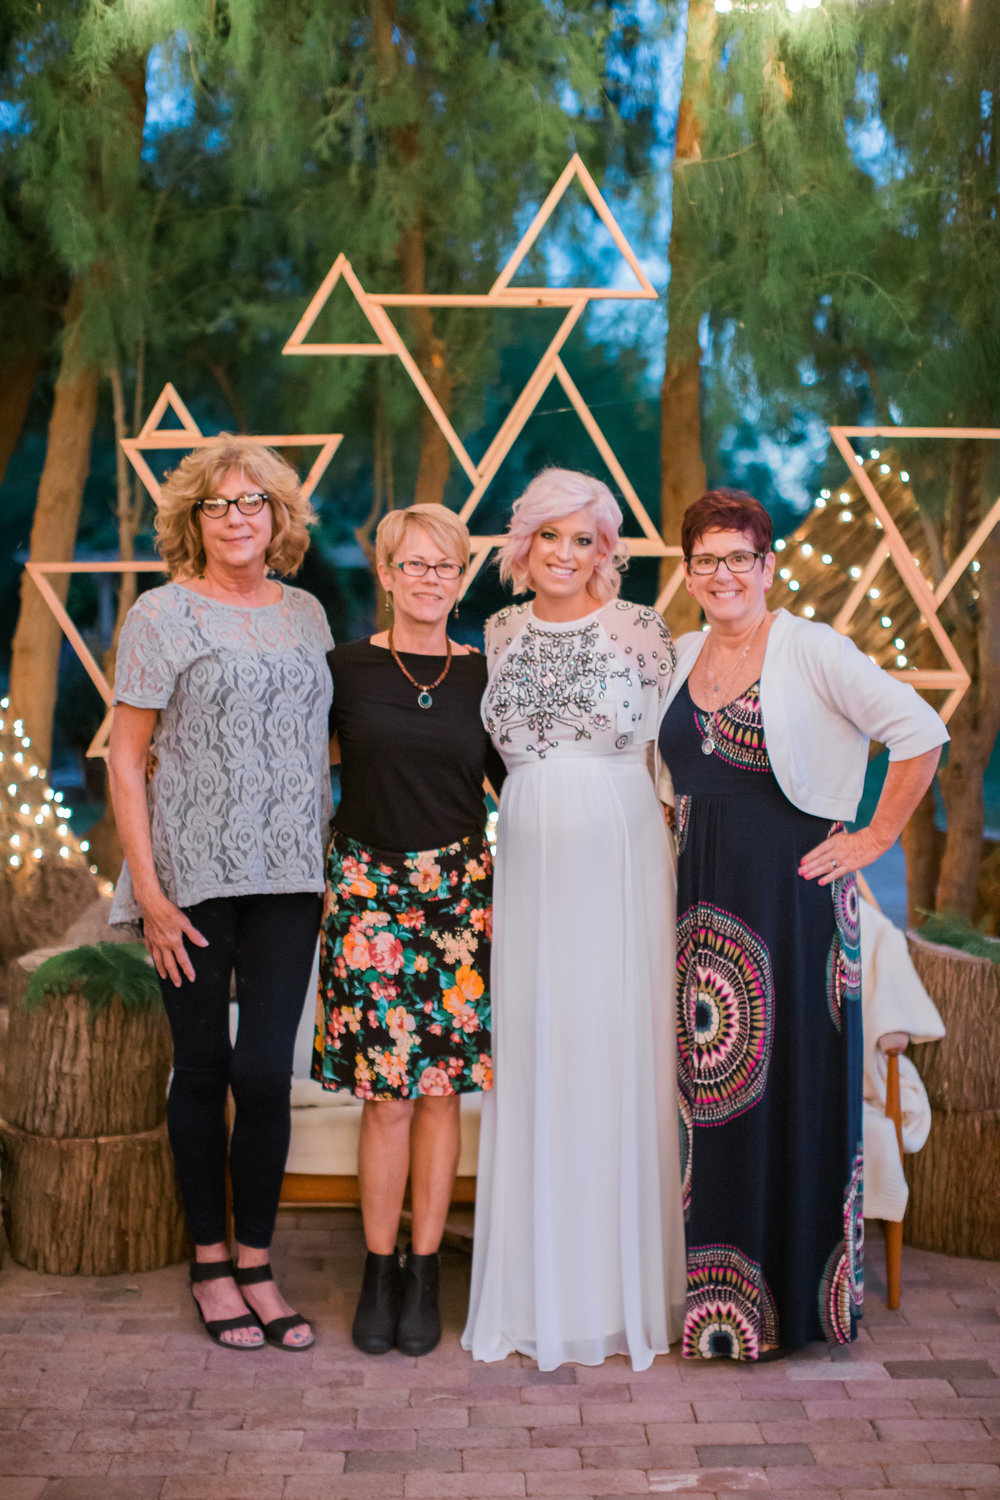 The Sweetest Arizona Baby Shower for Baby Becks - Konsider It Done- AZ Arizona Wedding & Event Planner, Designer, Coordinator Planning in Scottsdale, Phoenix, Paradise Valley, Tempe, Gilbert, Mesa, Chandler, Tucson, Sedona